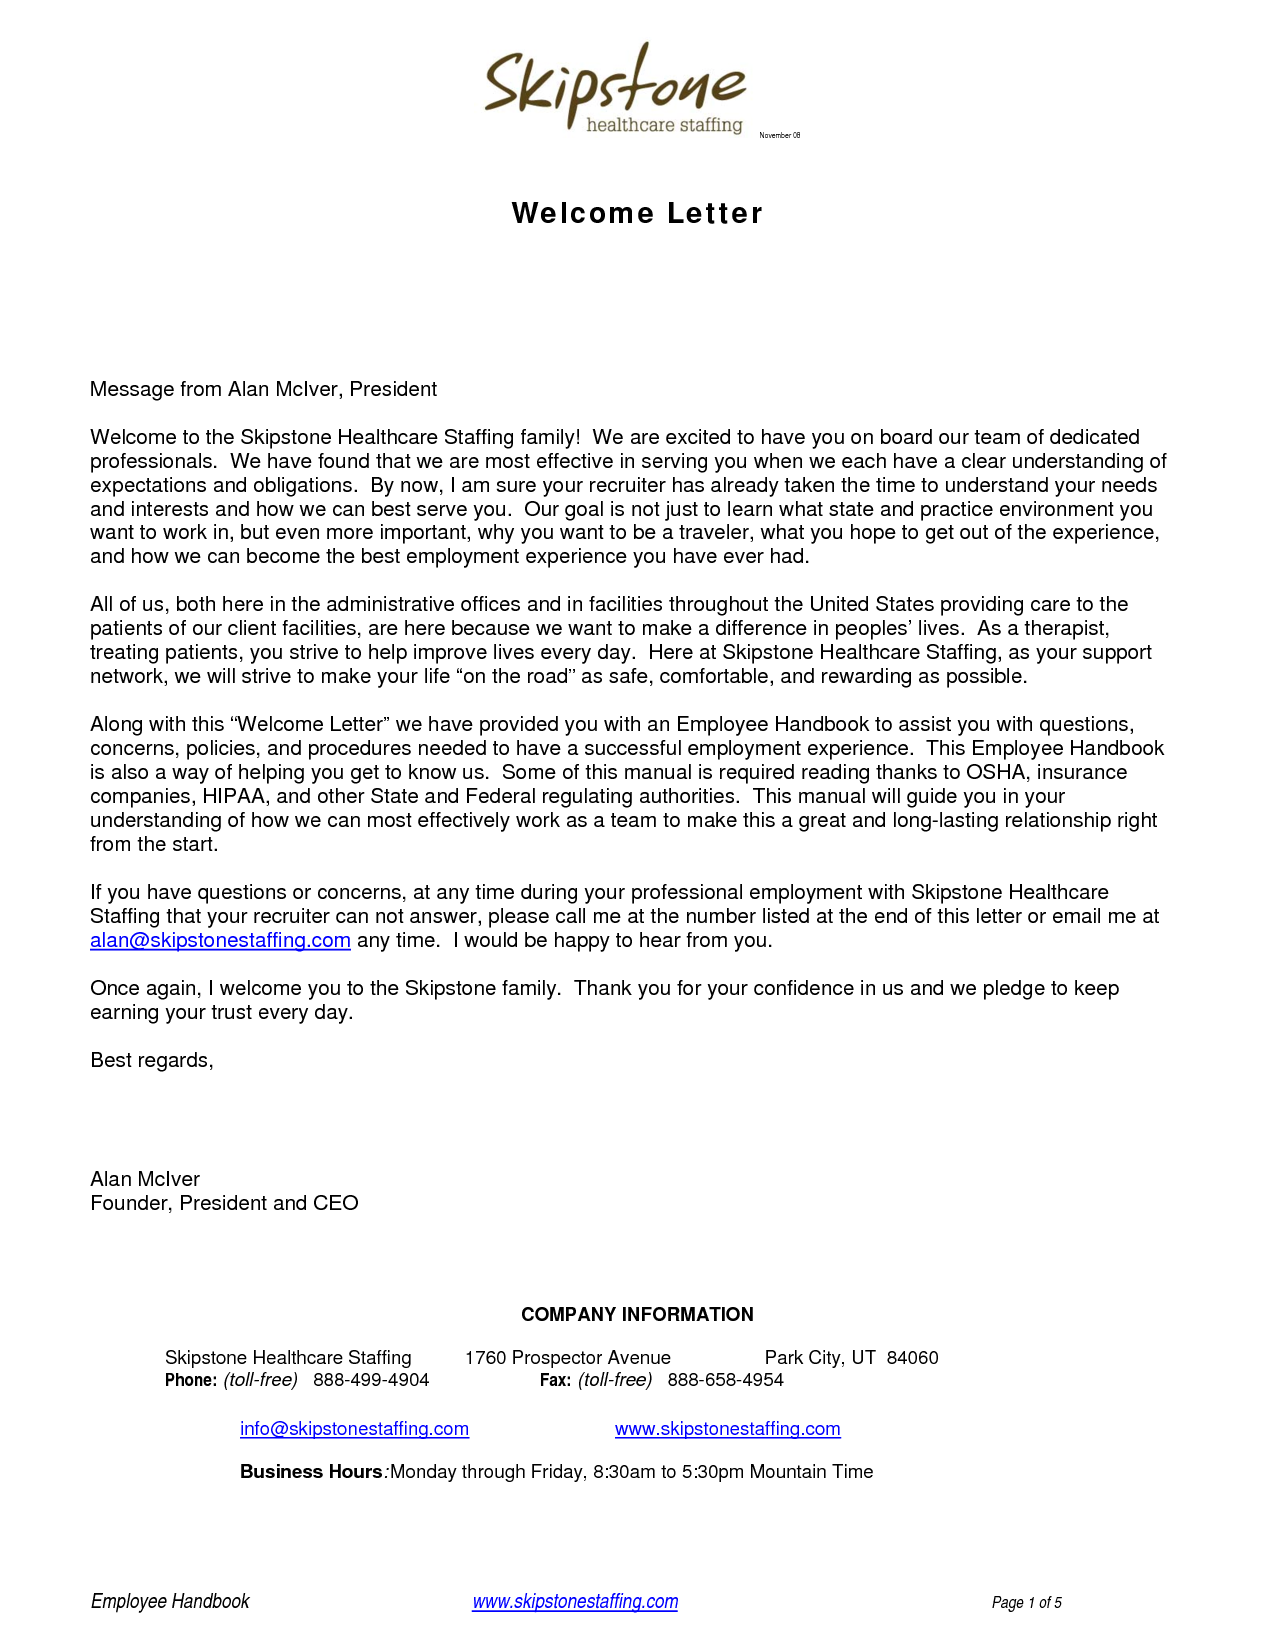 Welcome Letters BackgroundWelcome Letter Business Letter Sample ...